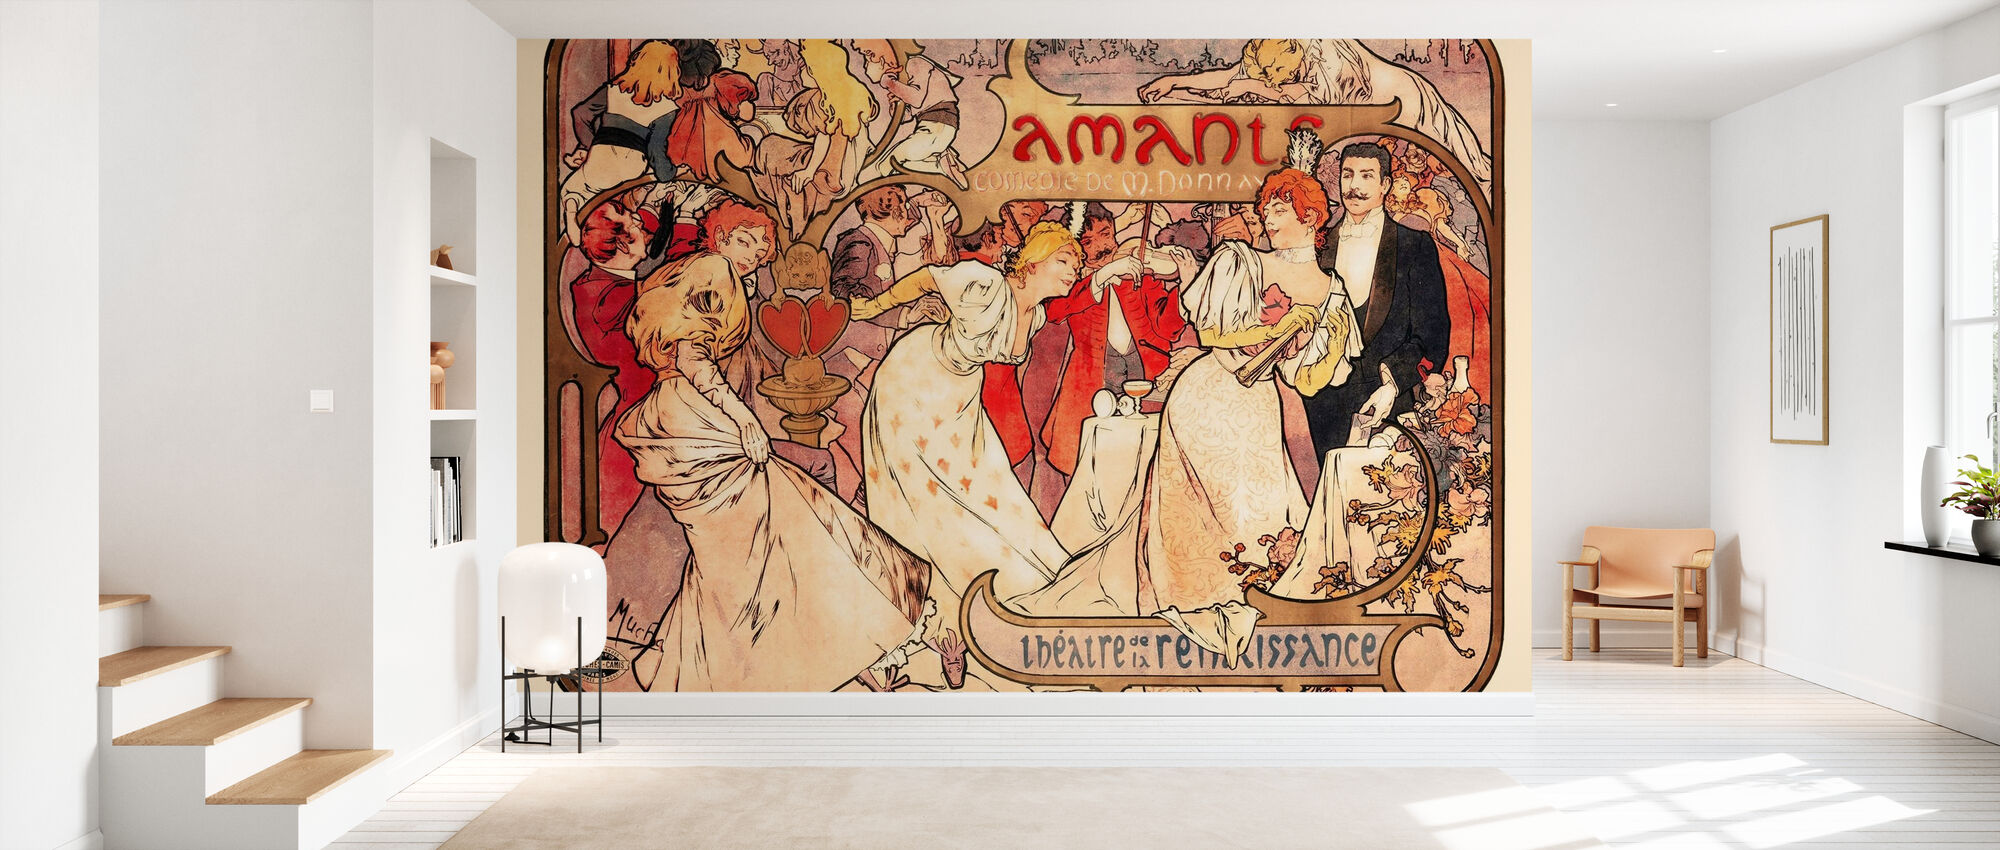 Alphonse Mucha - Amants Colour Litho - Tapetti - Aula